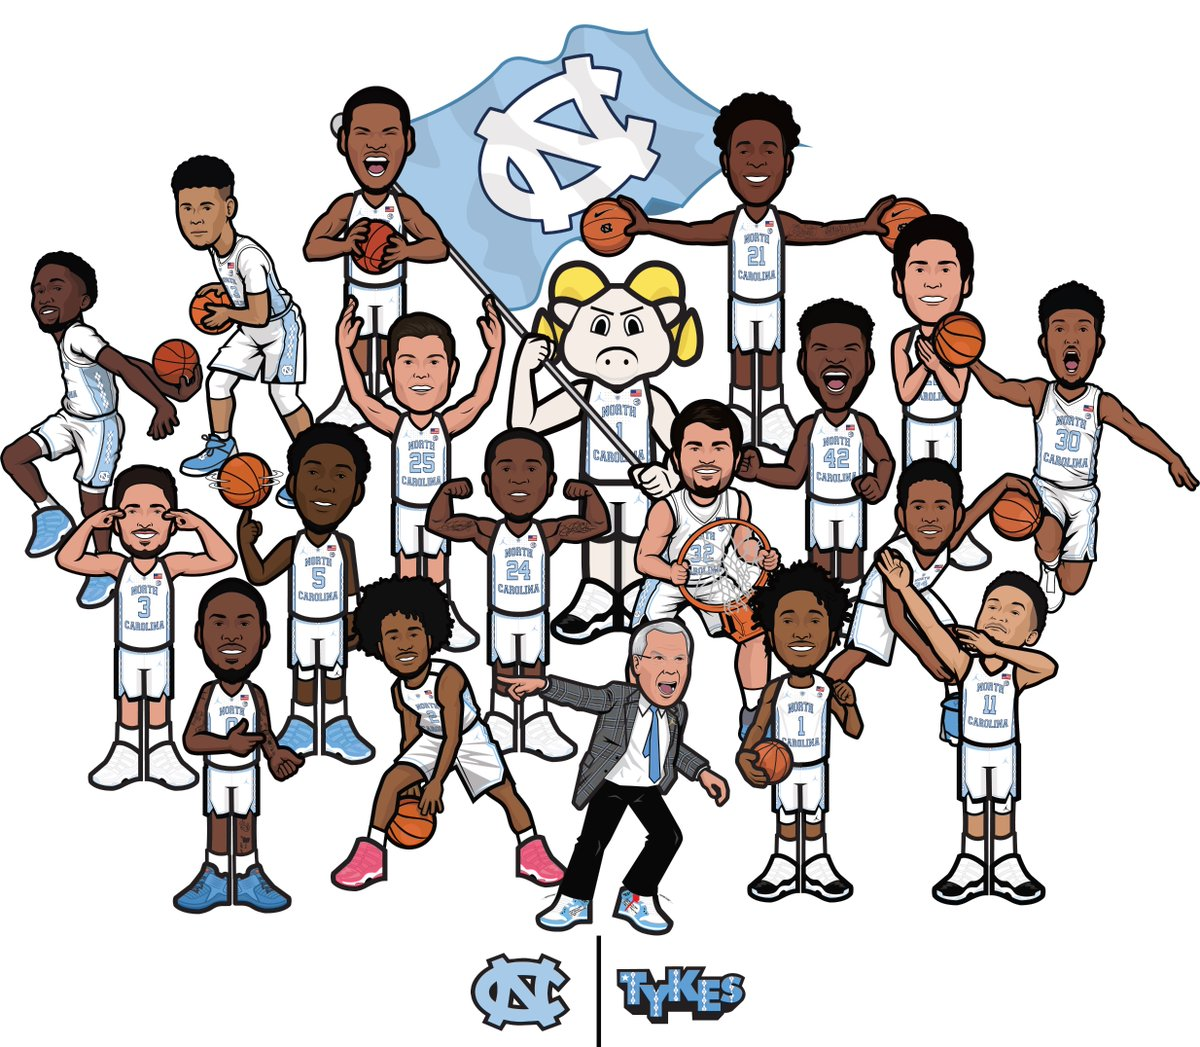 GIVEAWAY TOMORROW   Tykes t-shirts for students at gate C  posters for fans at gates A,B,D  #CarolinaSZN<br>http://pic.twitter.com/M2RmeNKuVn